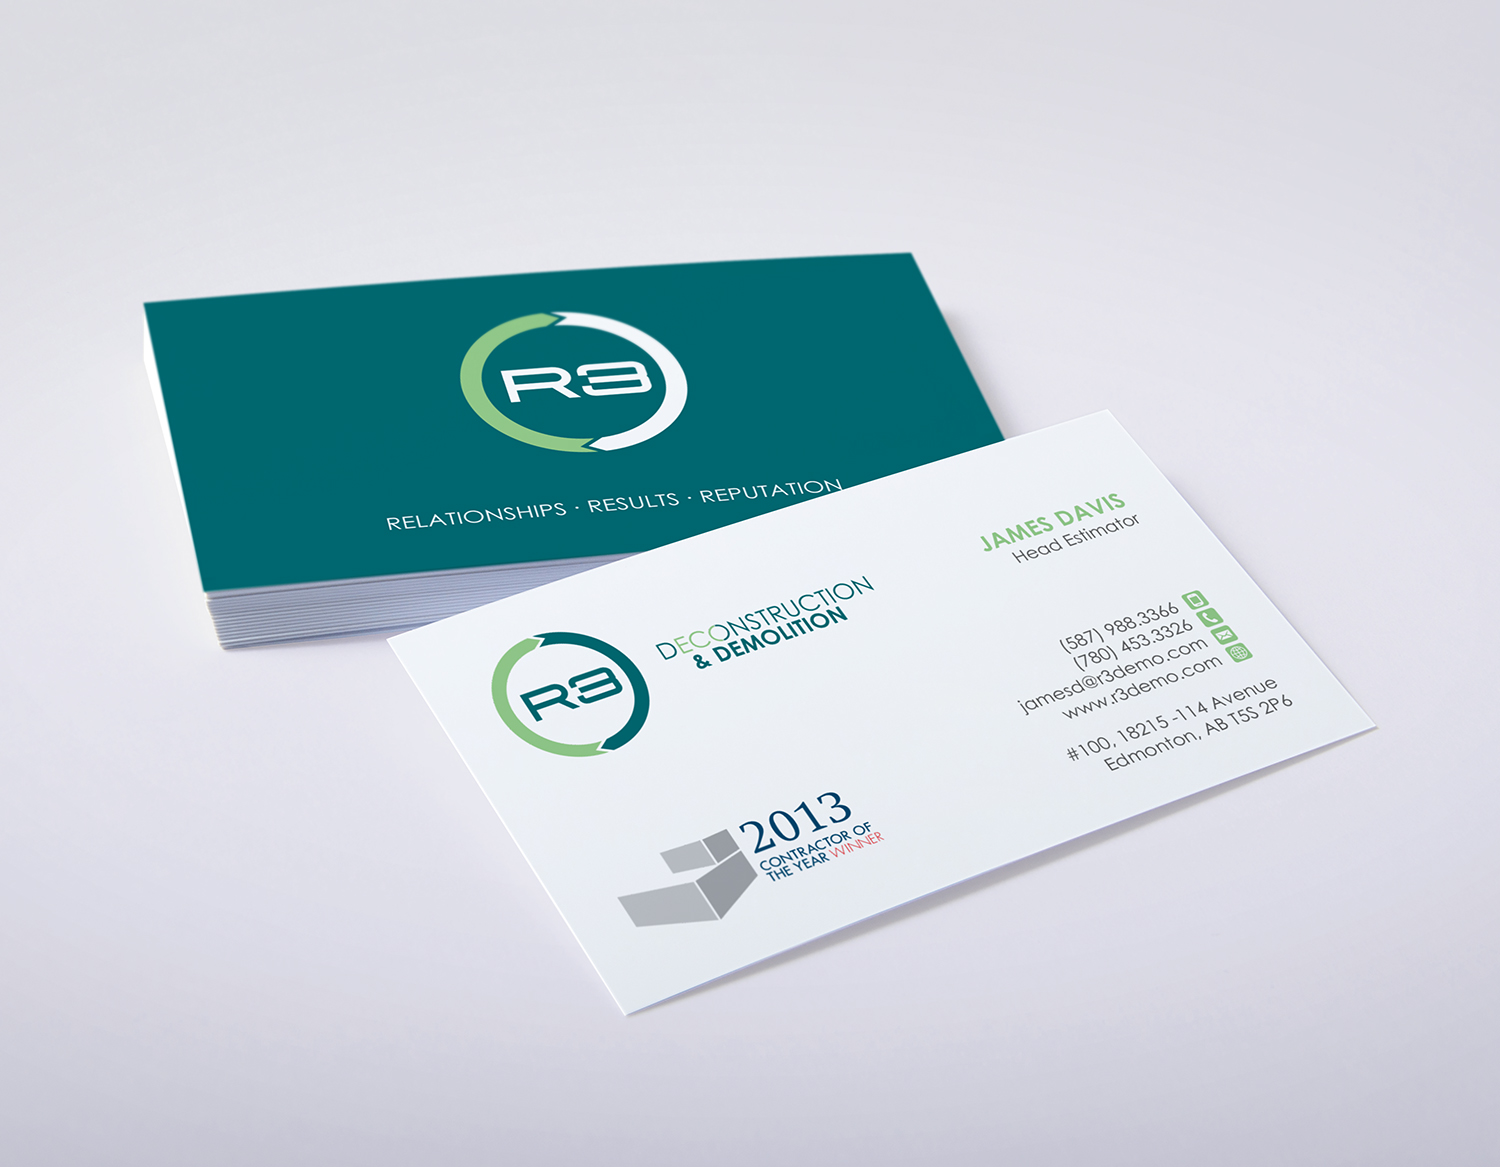 Modern bold construction company business card design for r3 business card design by logodentity for r3 deconstruction design 7821550 reheart Choice Image